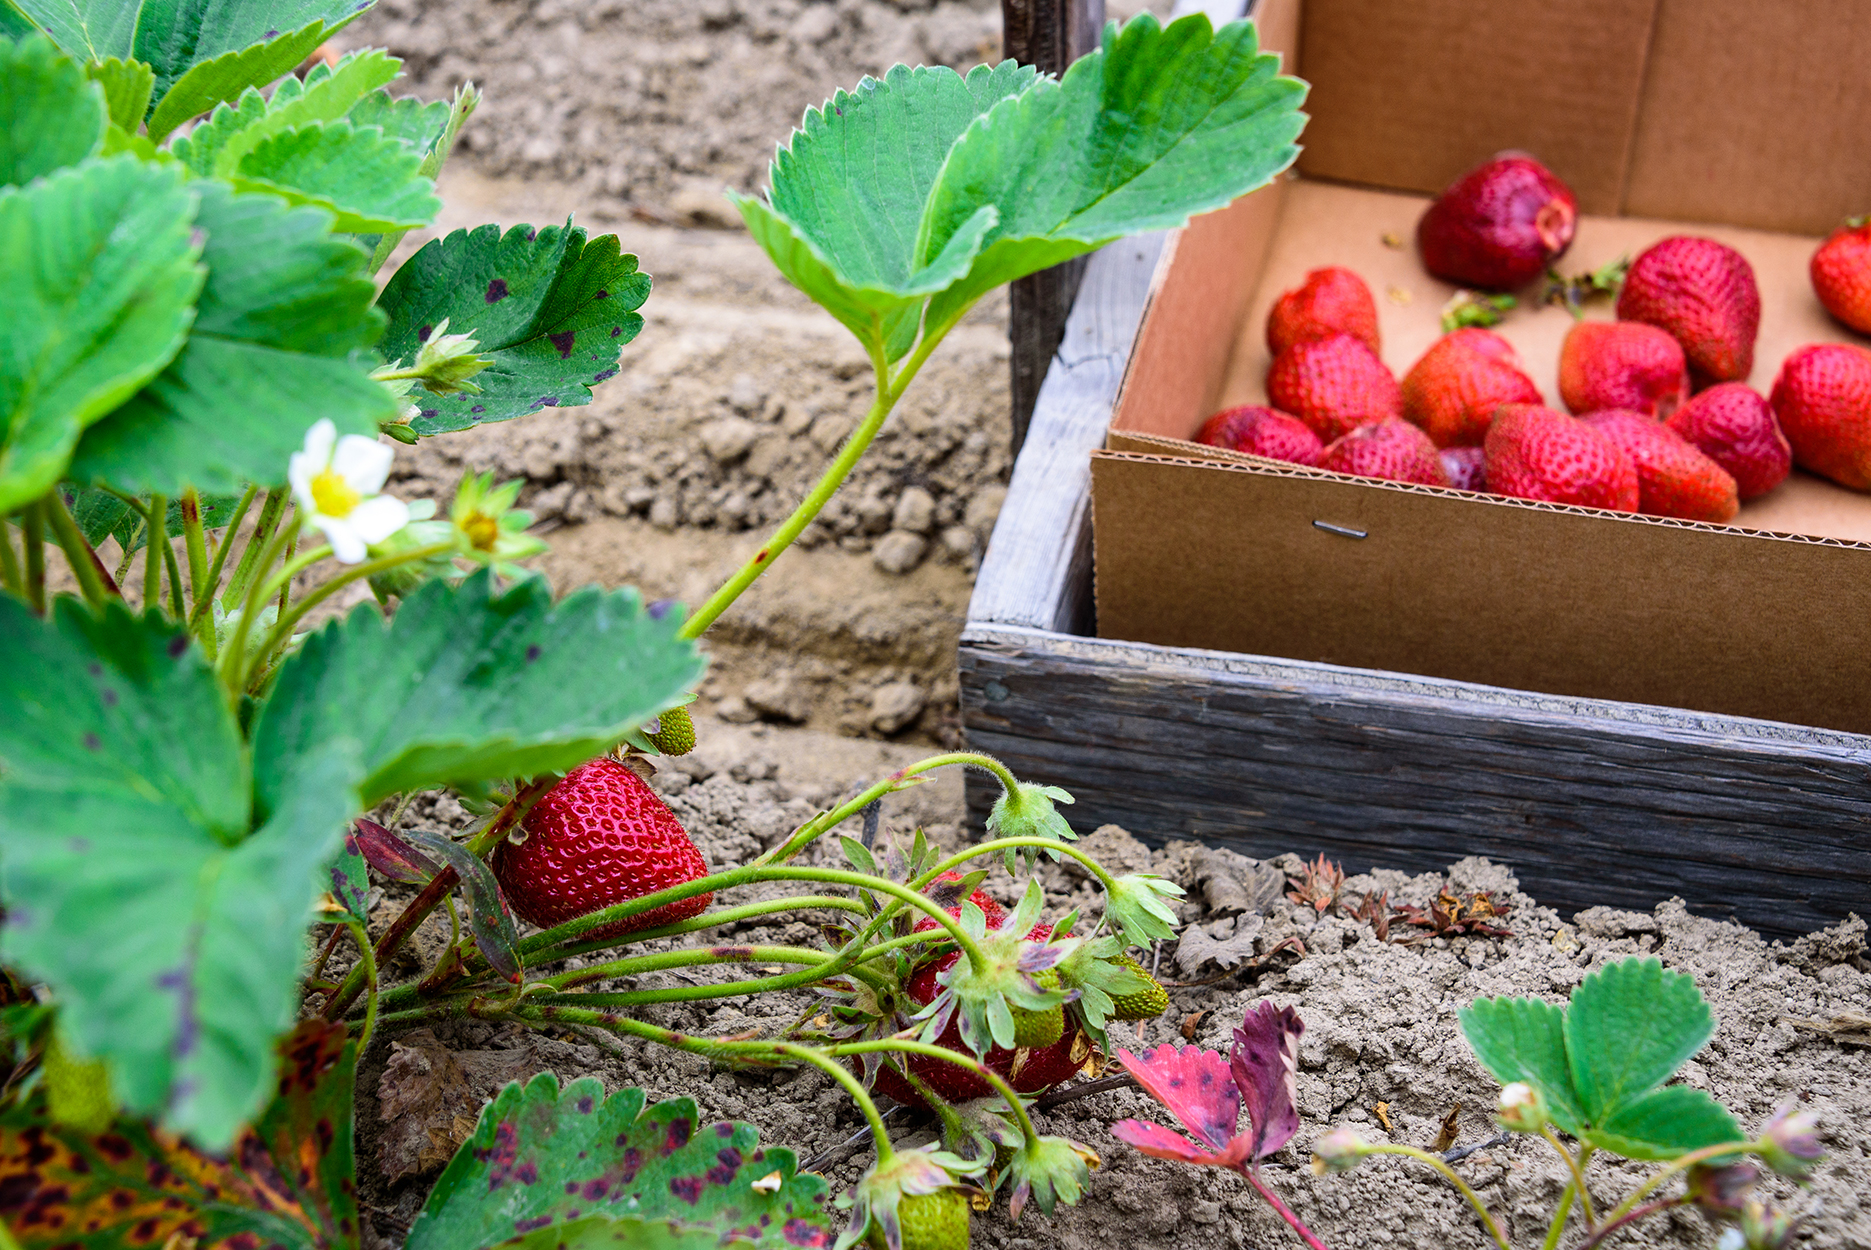 Close up of a strawberry plant in a farm field with luscious red berries ready for harvest, includes a cardboard box in a wood basket to pick berries into